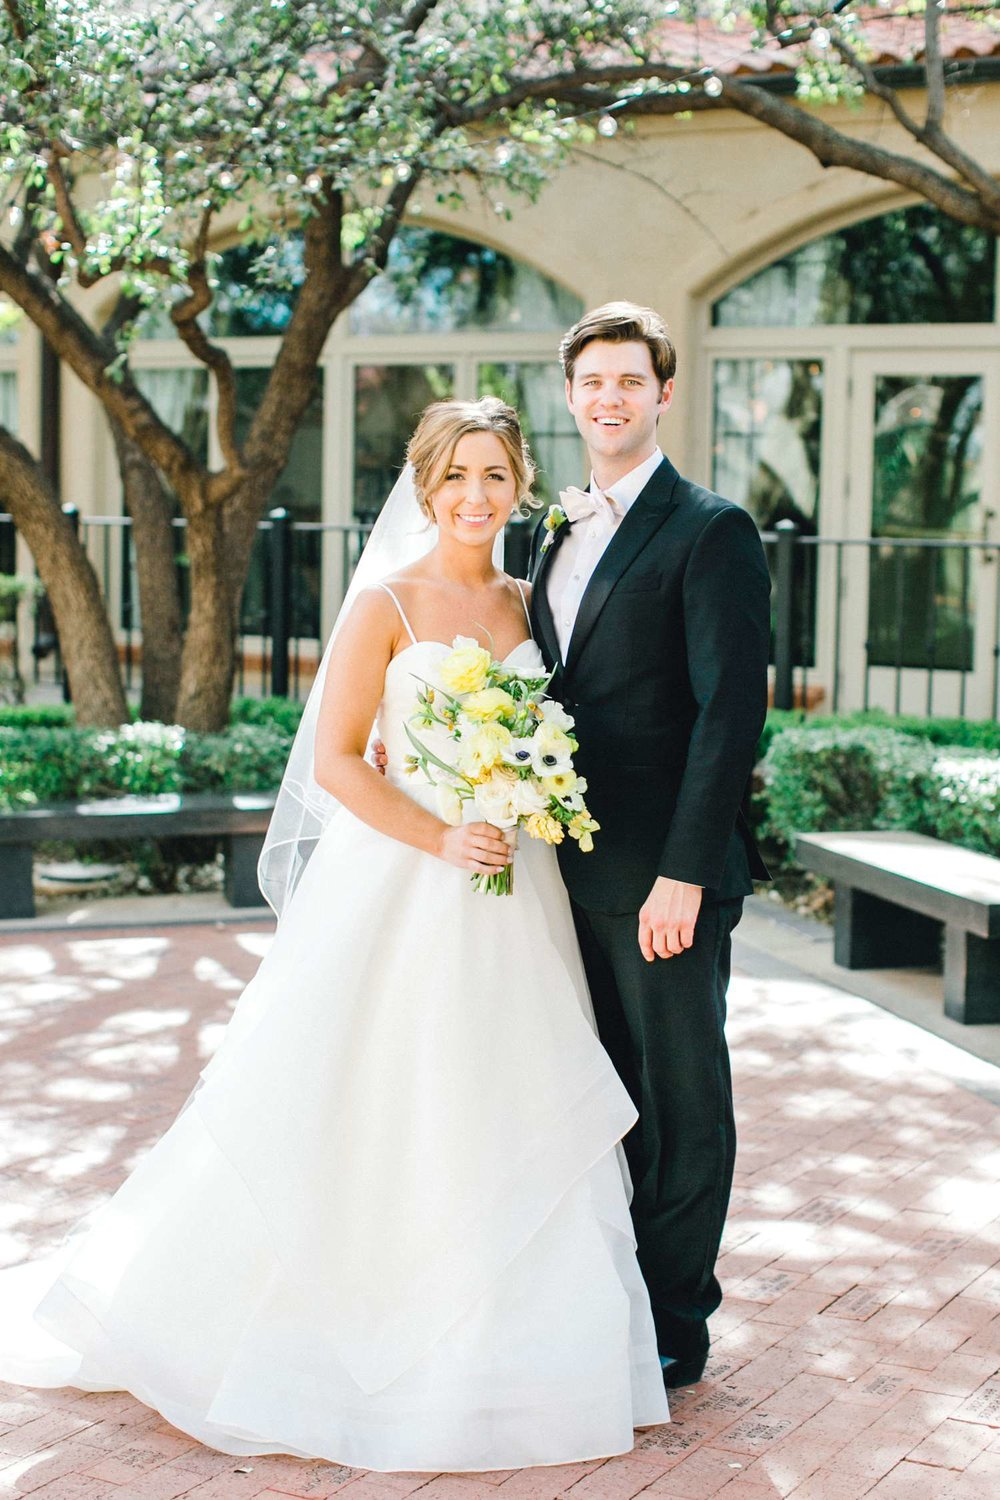 MARLEE+LLOYD+MORGAN+ALLEEJ+TEXAS+TECH+MERKET+ALUMNI+WEDDINGS+LUBBOCK+WEST+TABLE+CLASSIC+SPAIN_0104.jpg